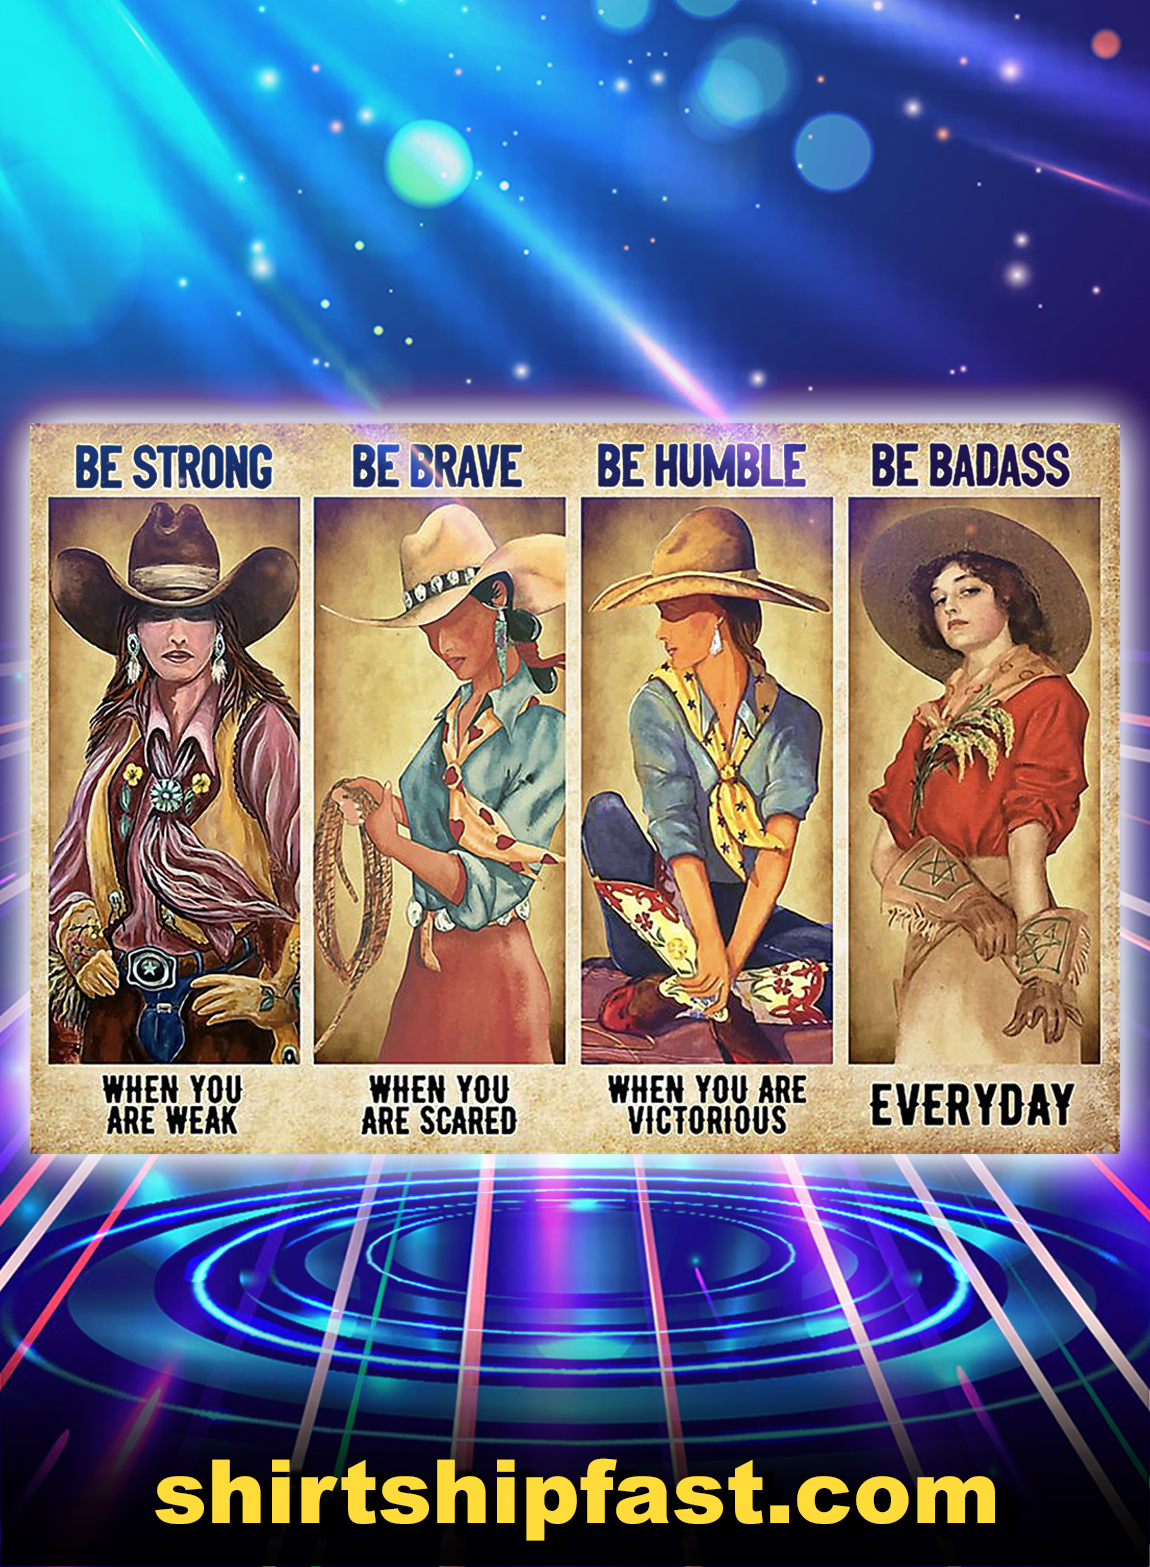 Cowgirl be strong be brave be humble be badass poster - A3